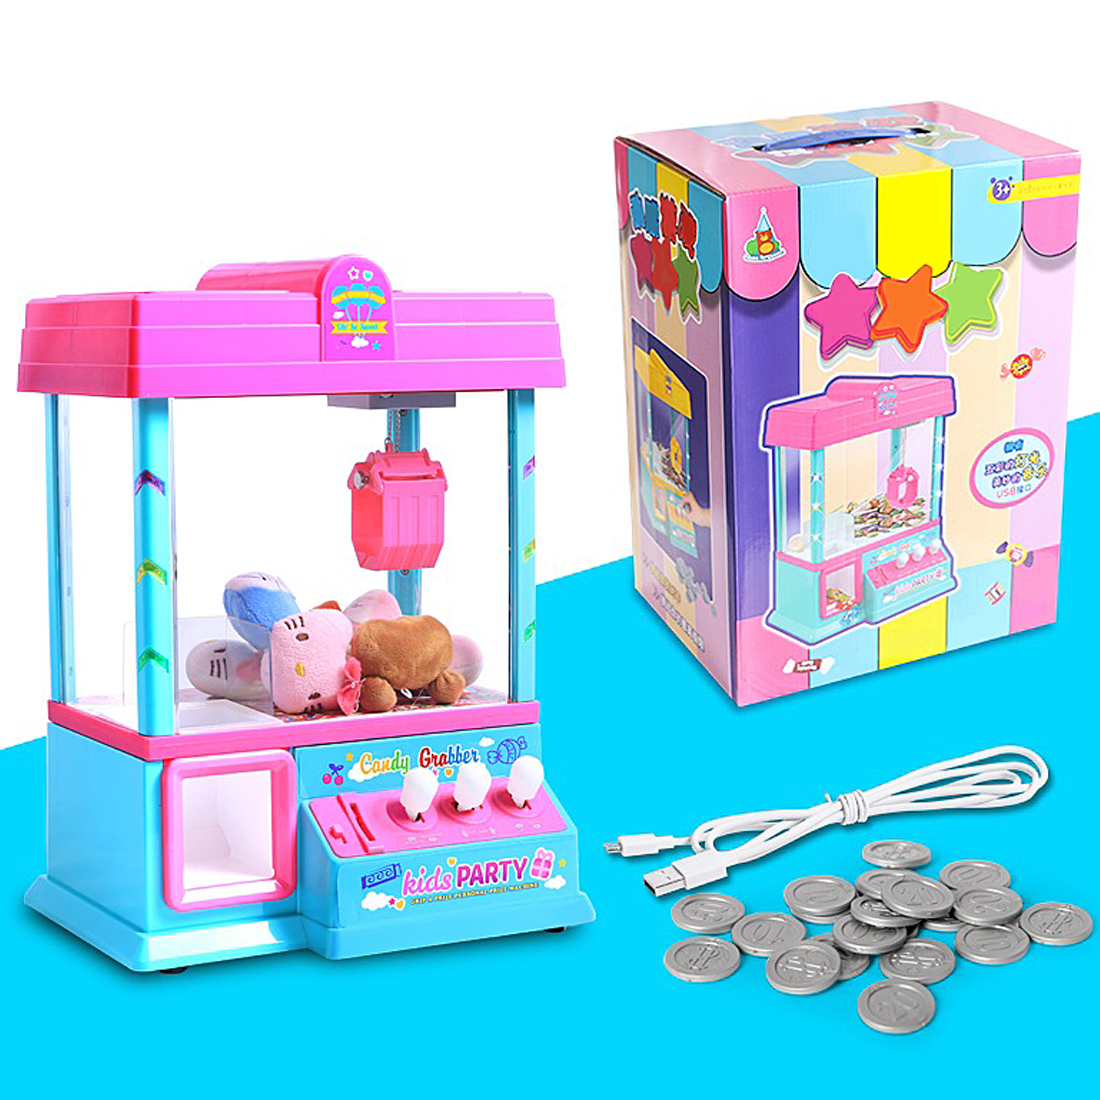 Big Size Coin Operated High Simulation USB Mini Slot Machine Electronic Claw Toy Machine with Music Light Party Toys high quality coin operated slot machine for toys vending cabinet capsule vending machine big bulk toy vendor arcade machine